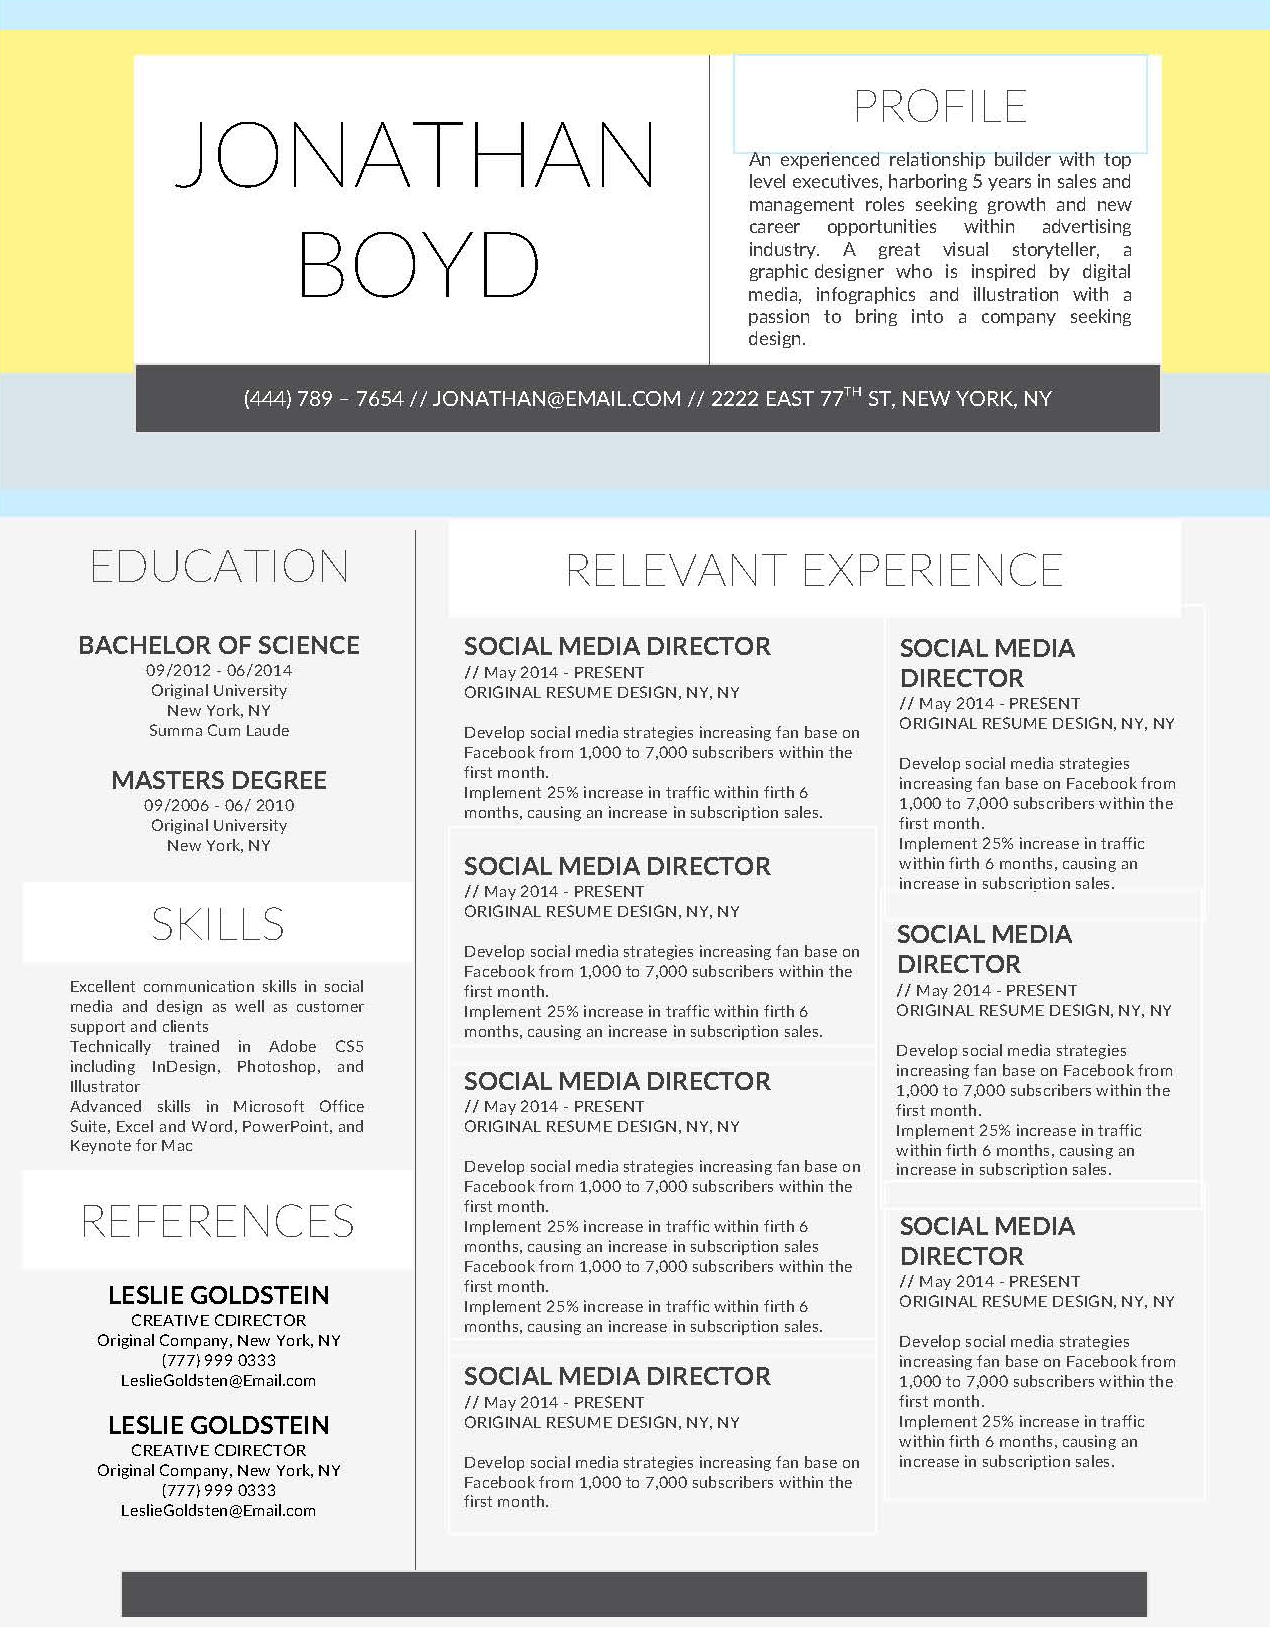 Jonathan Boyde - Downloadable Resume + Cover Template and Cover Letter Template for Microsoft Word and Apple Pages. This cover letter template is perfect for anyone in the fashion field. The template's design is a modern, unique, colorful, and professional. WE SWEAT THE DETAILS, SO YOU DON'T HAVE TO Stand Out Shop resume templates for Microsoft Word and Apple Pages will help you design a modern and professional resume in minutes! Simply download, open in Microsoft Word or Apple Pages, and input your resume's information. Increase your chances of landing your dream job with a job winning, modern, simple, and scannable resume template for Microsoft Word and Apple Pages. Creating a resume shouldn't suck Simply download a resume template from Stand Out Shop, enter your information in Microsoft Word or Apple Pages and get a beautifully formatted resume in seconds. Create a unique and vivid resume in minutes. Make an impressive resume. Customize your own layout in Microsoft Word or Apple Pages and introduce yourself in an impressive way. You can download your resume at any time. Stand out from other job seekers with a beautiful professional design.